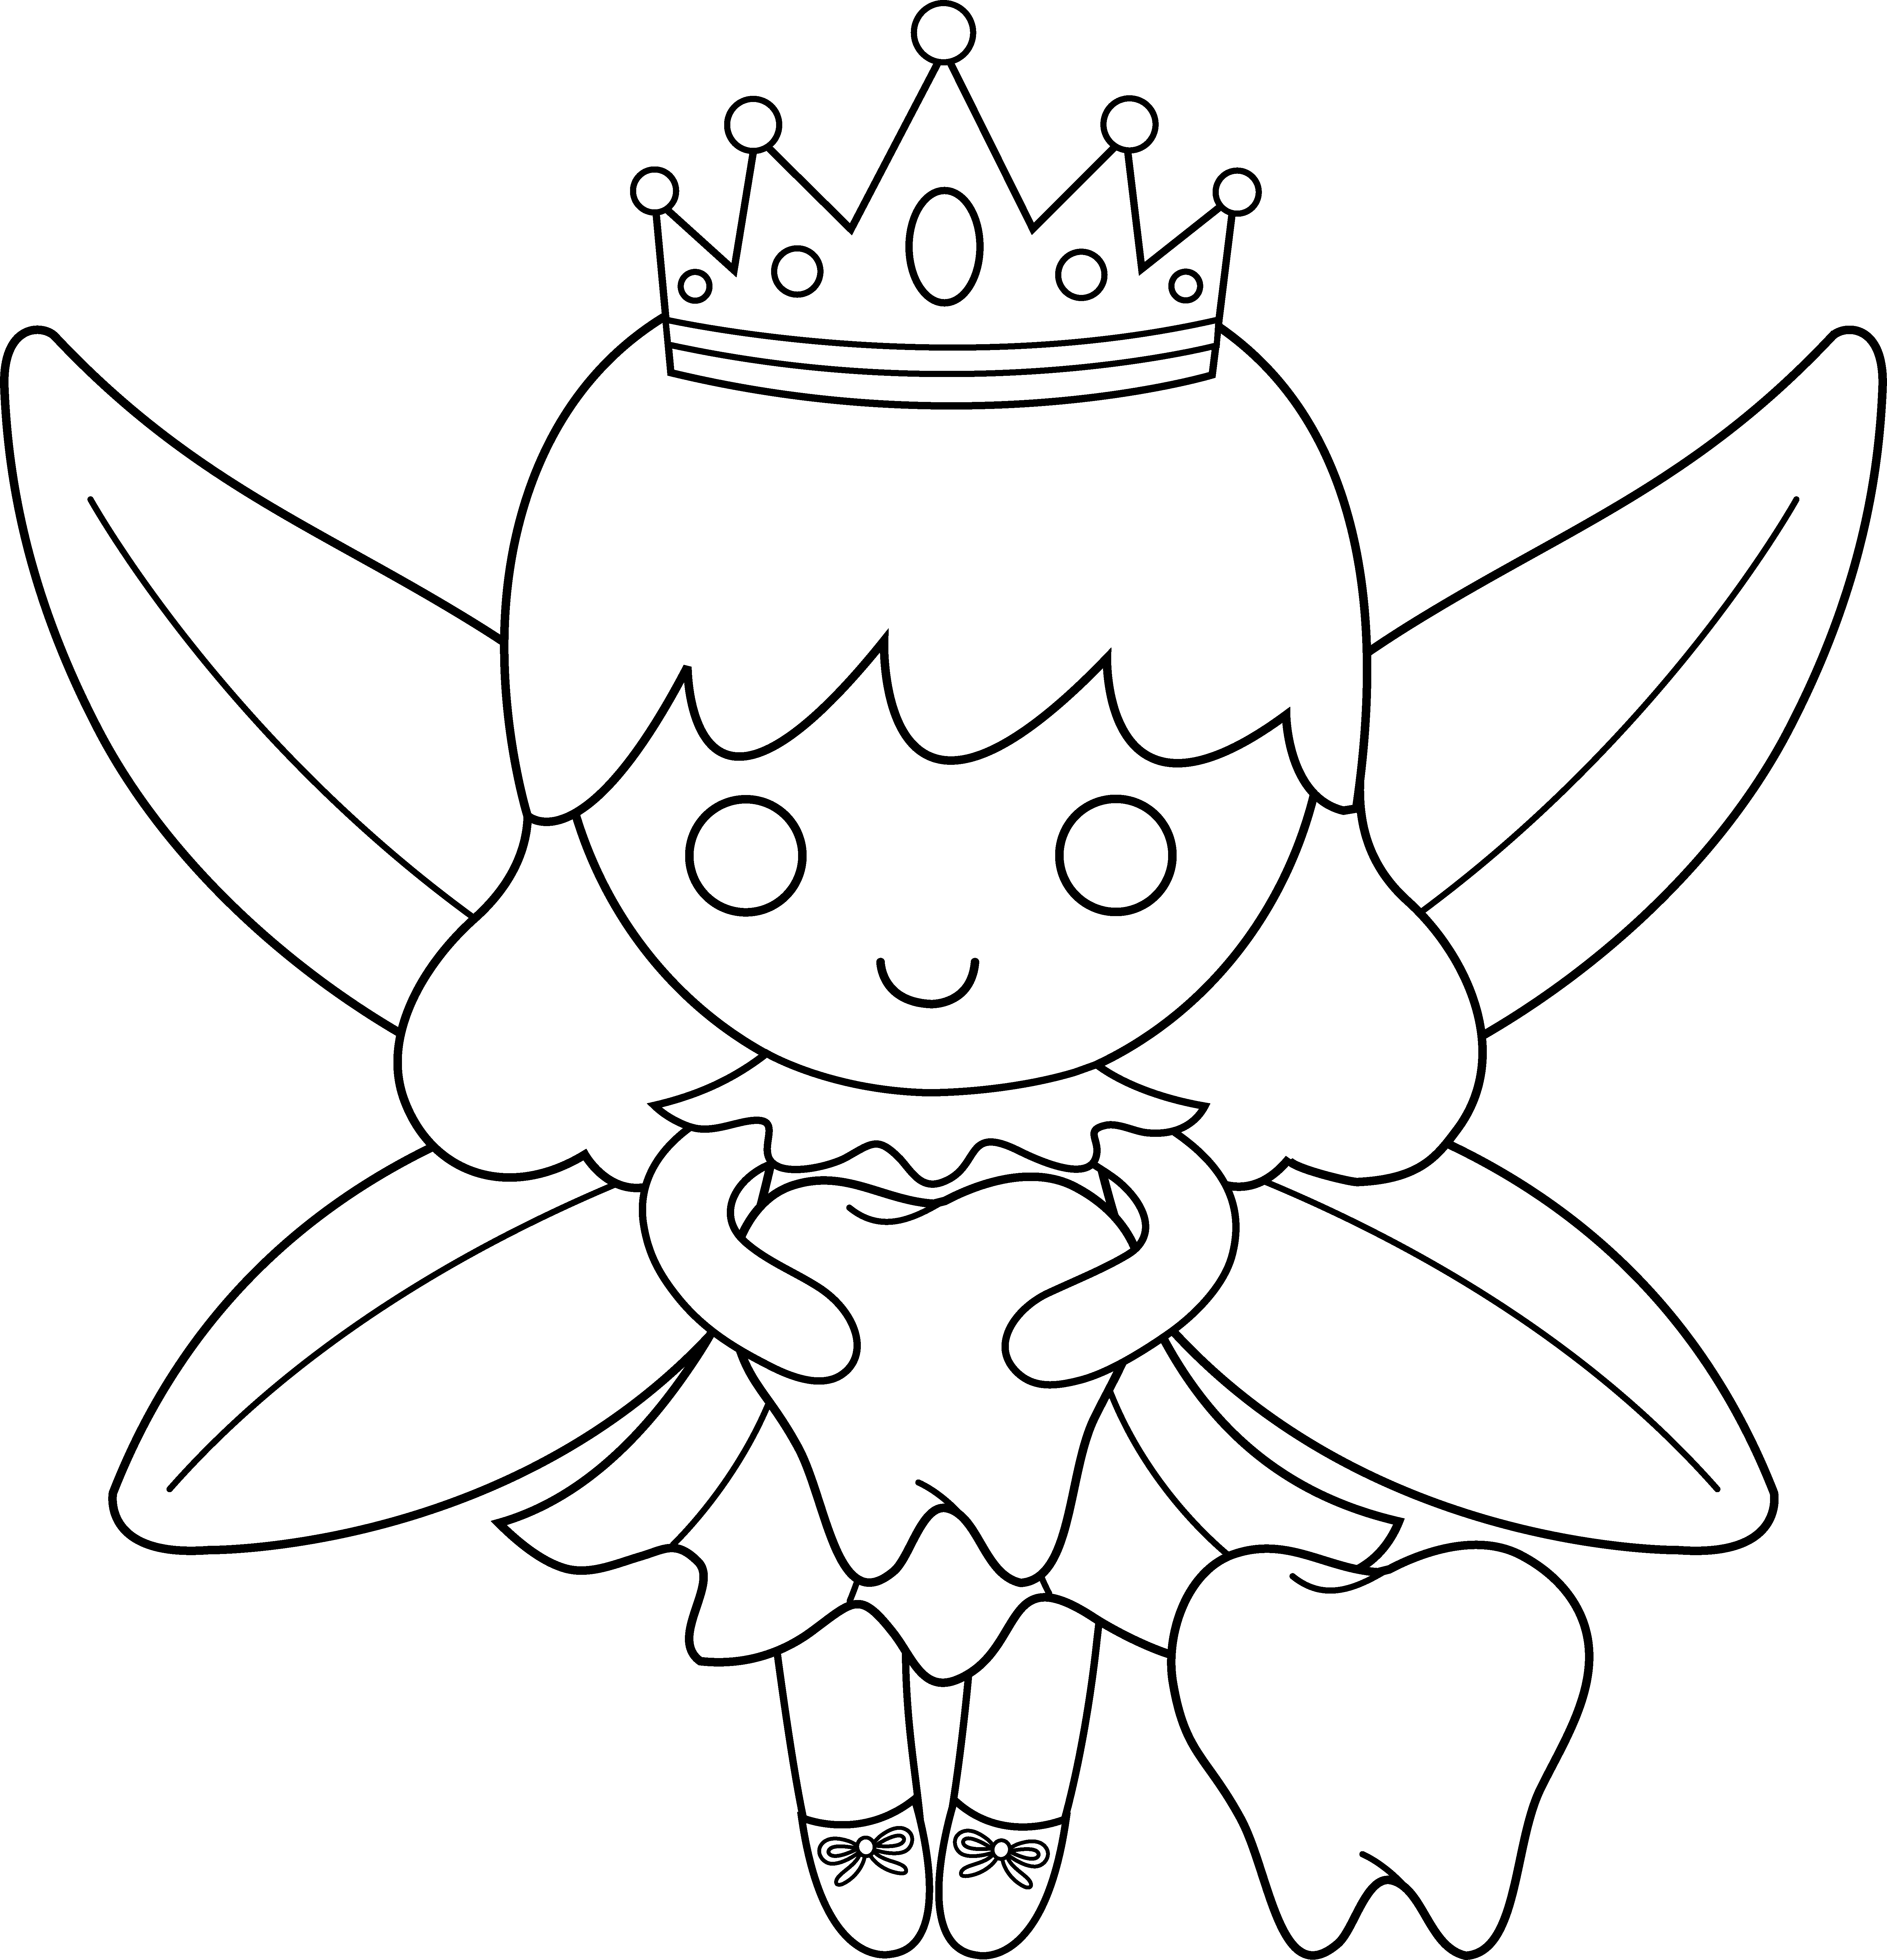 tooth fairy coloring pages cute colorable tooth fairy free clip art coloring tooth fairy pages